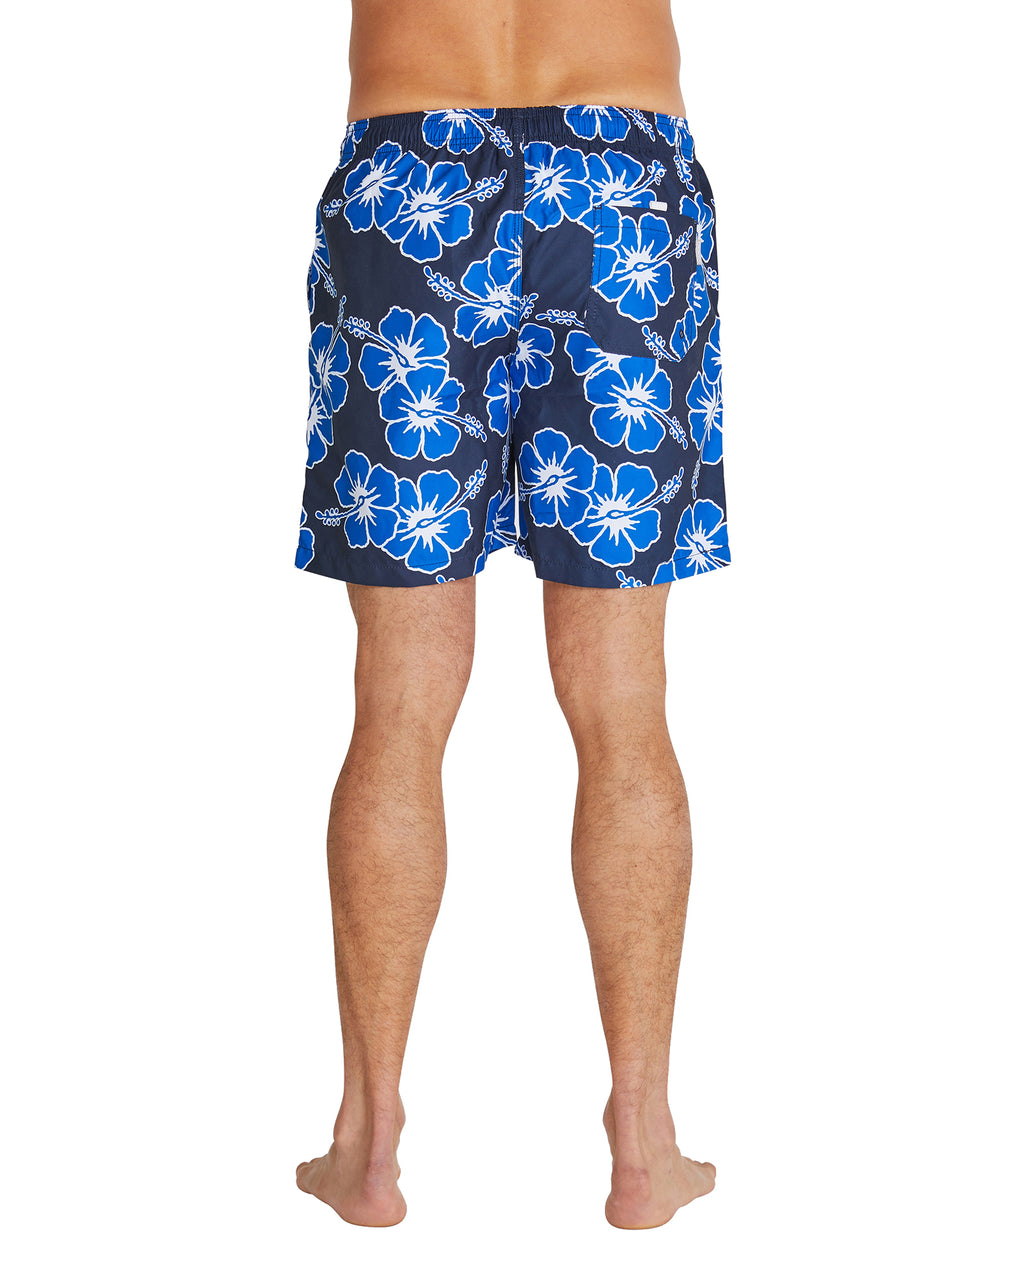 Swim Short - Way Back when - Navy/Blue